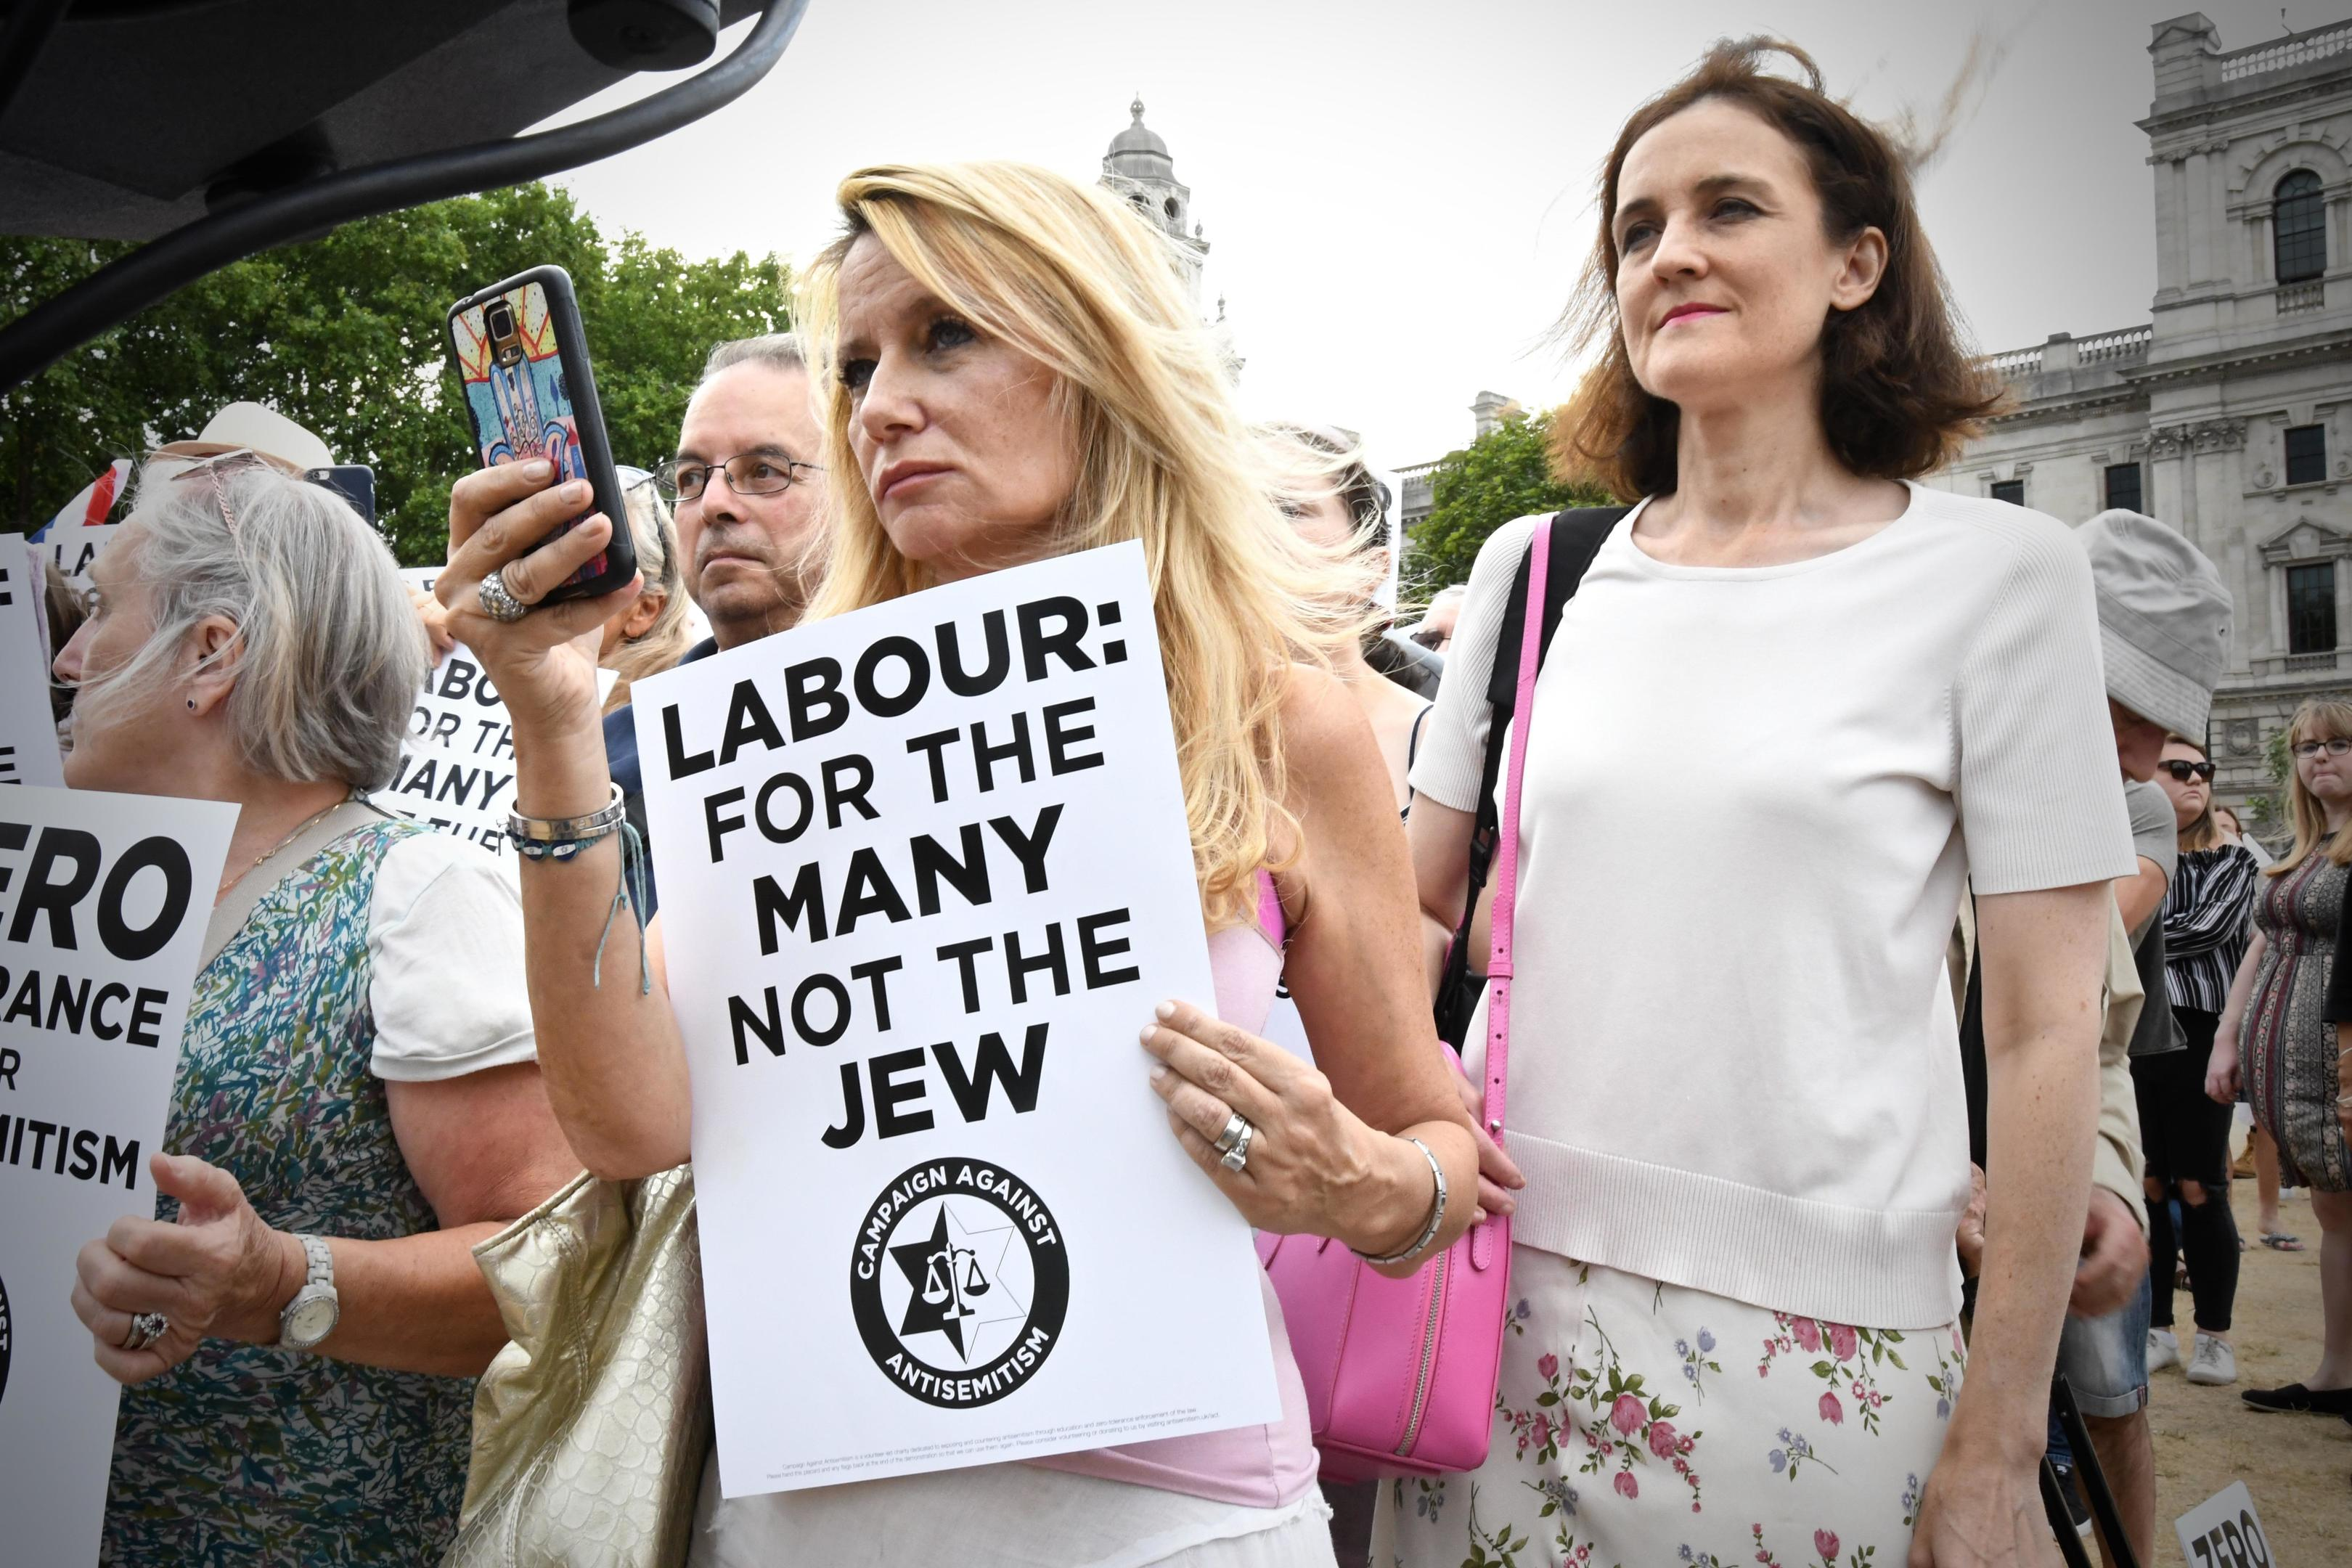 Protests take place outside Parliament by the Jewish community increasingly concerned by levels of anti semitism in the Labour Party. (Incmonocle)